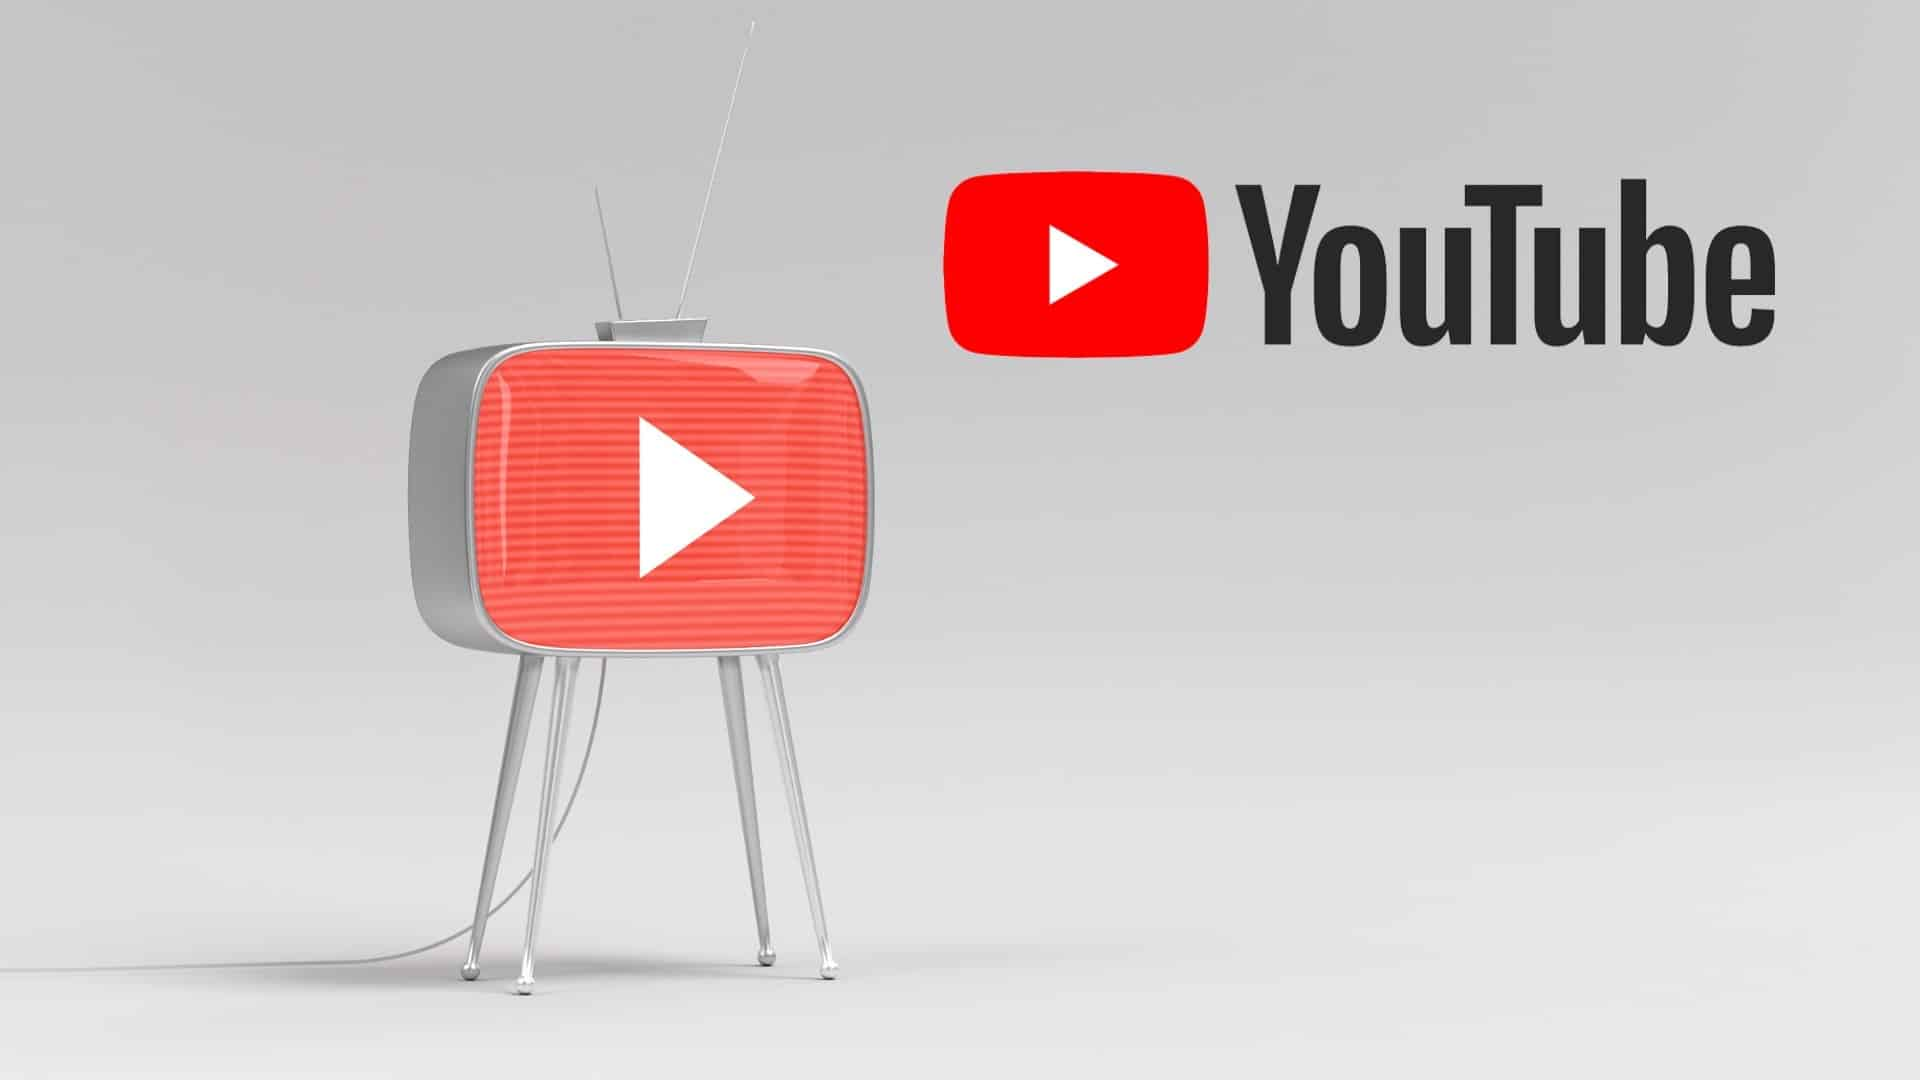 YouTube is Changing Rules on Moderating Content of Violent Games